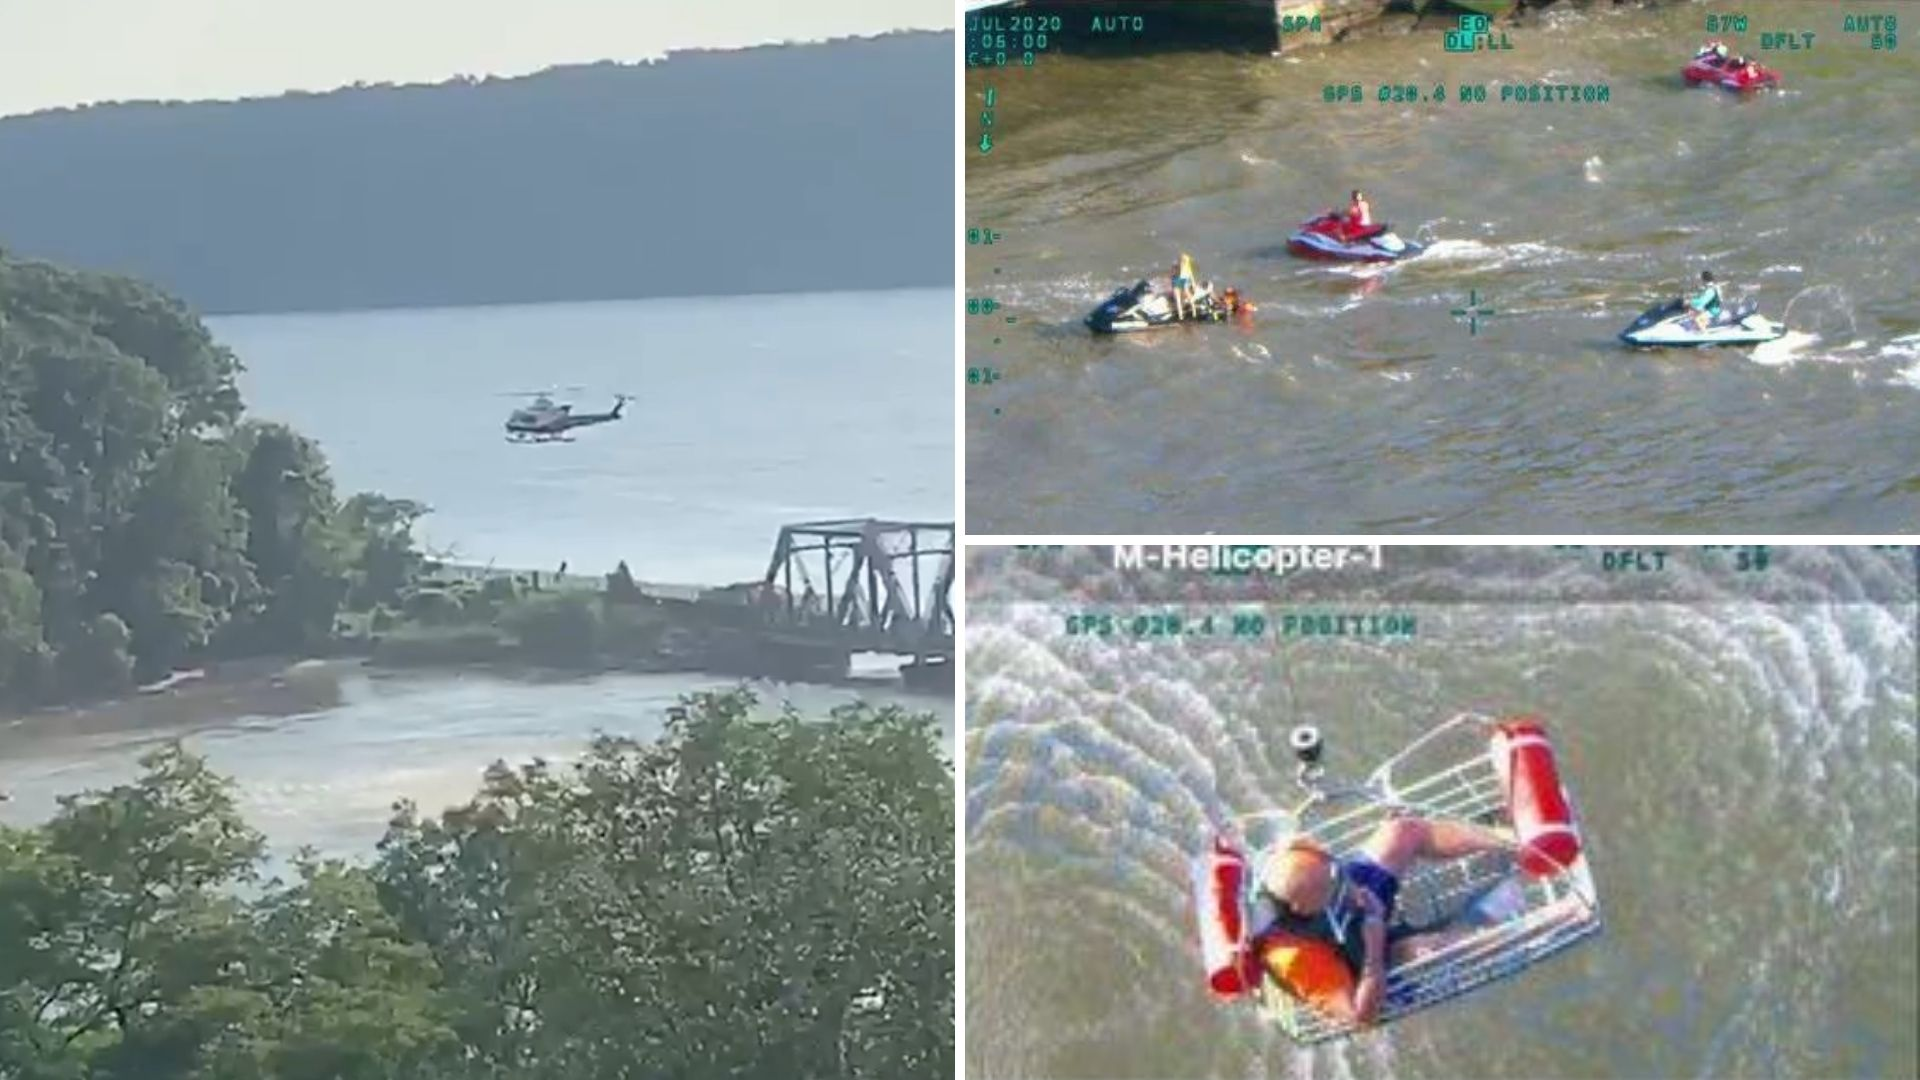 Injured jet skier rescued by NYPD in Hudson River near Bronx and Inwood